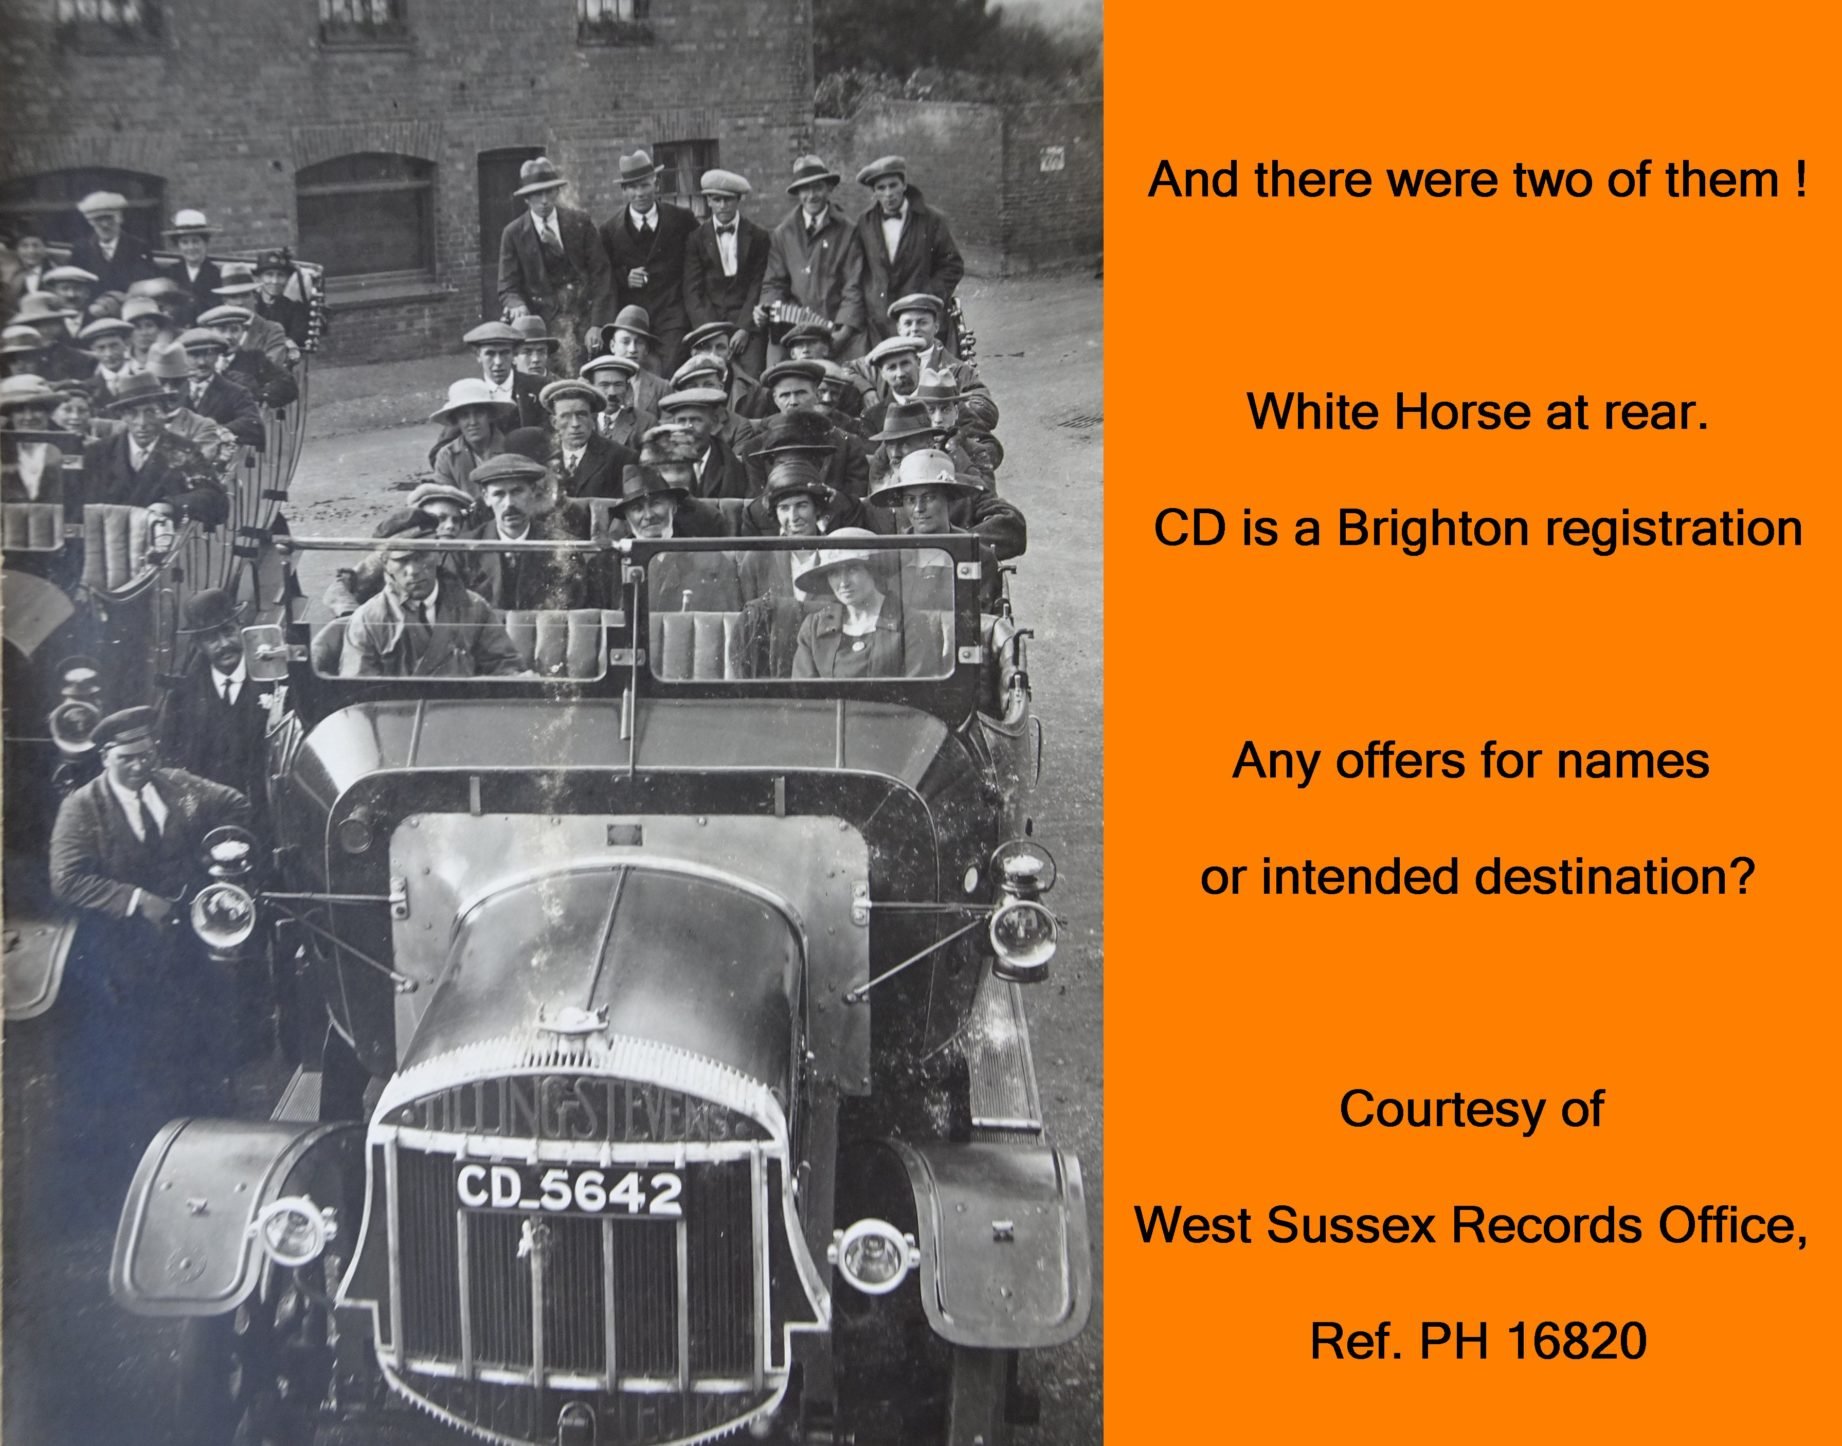 WESTBOURNE HISTORY PHOTO, CHARABANC OUTING , WHITE HORSE